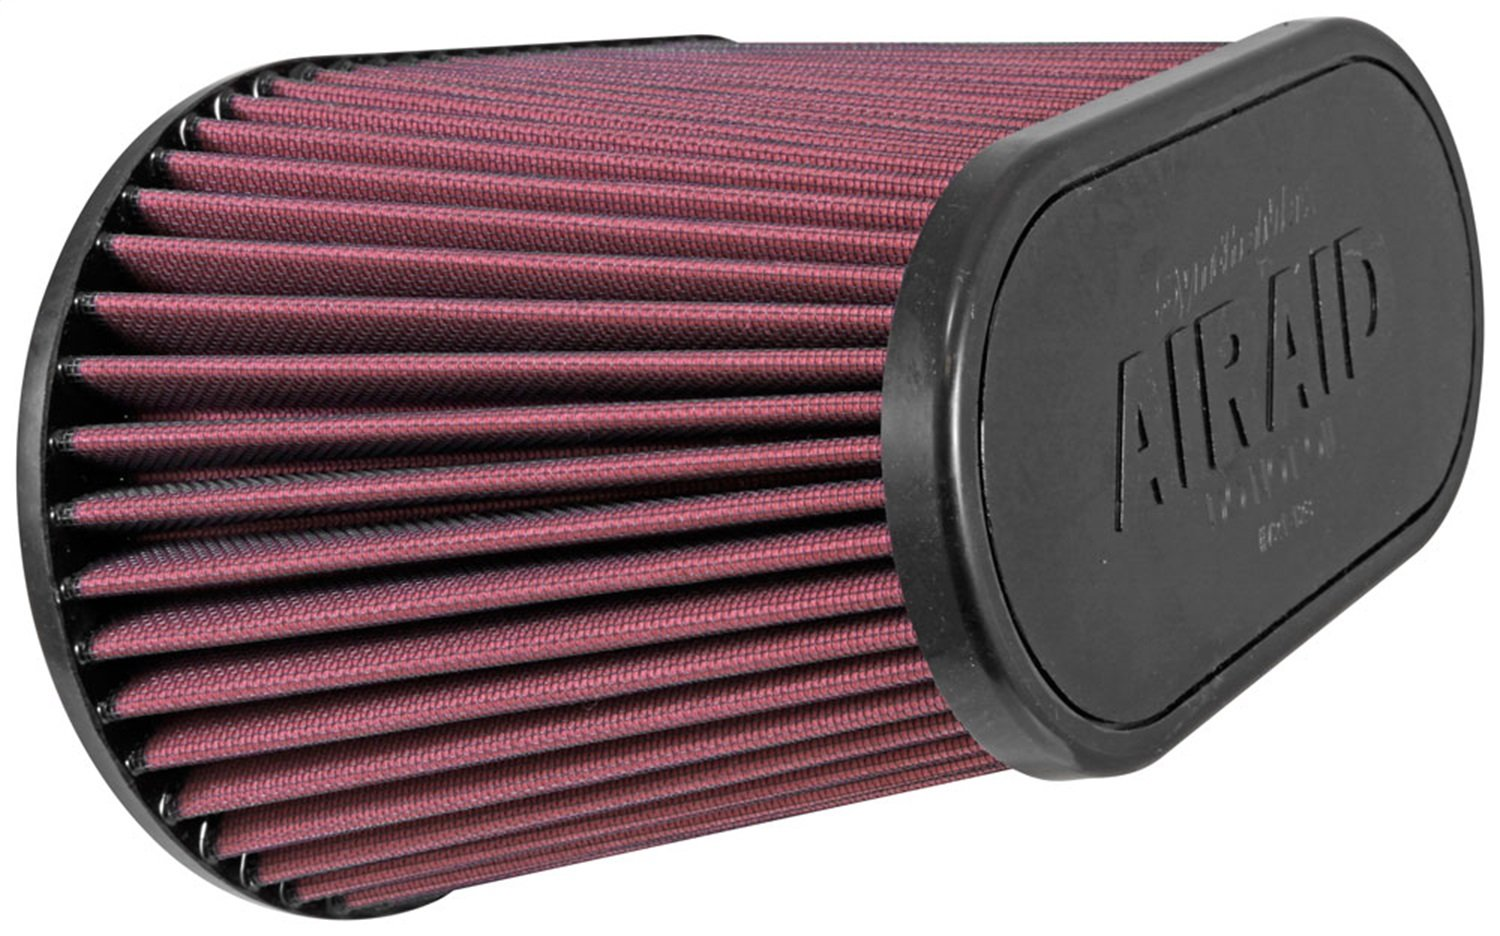 Airaid (AIR-720-128) Universal Clamp-On Air Filter: Oval Tapered; 4.5 in (114 mm) Flange ID; 7.375 in (187 mm) Height; 11.5 in x 7 in (292 mm x 178 mm) Base; 9 in x 4.5 in (229 mm x114 mm) Top by Airaid